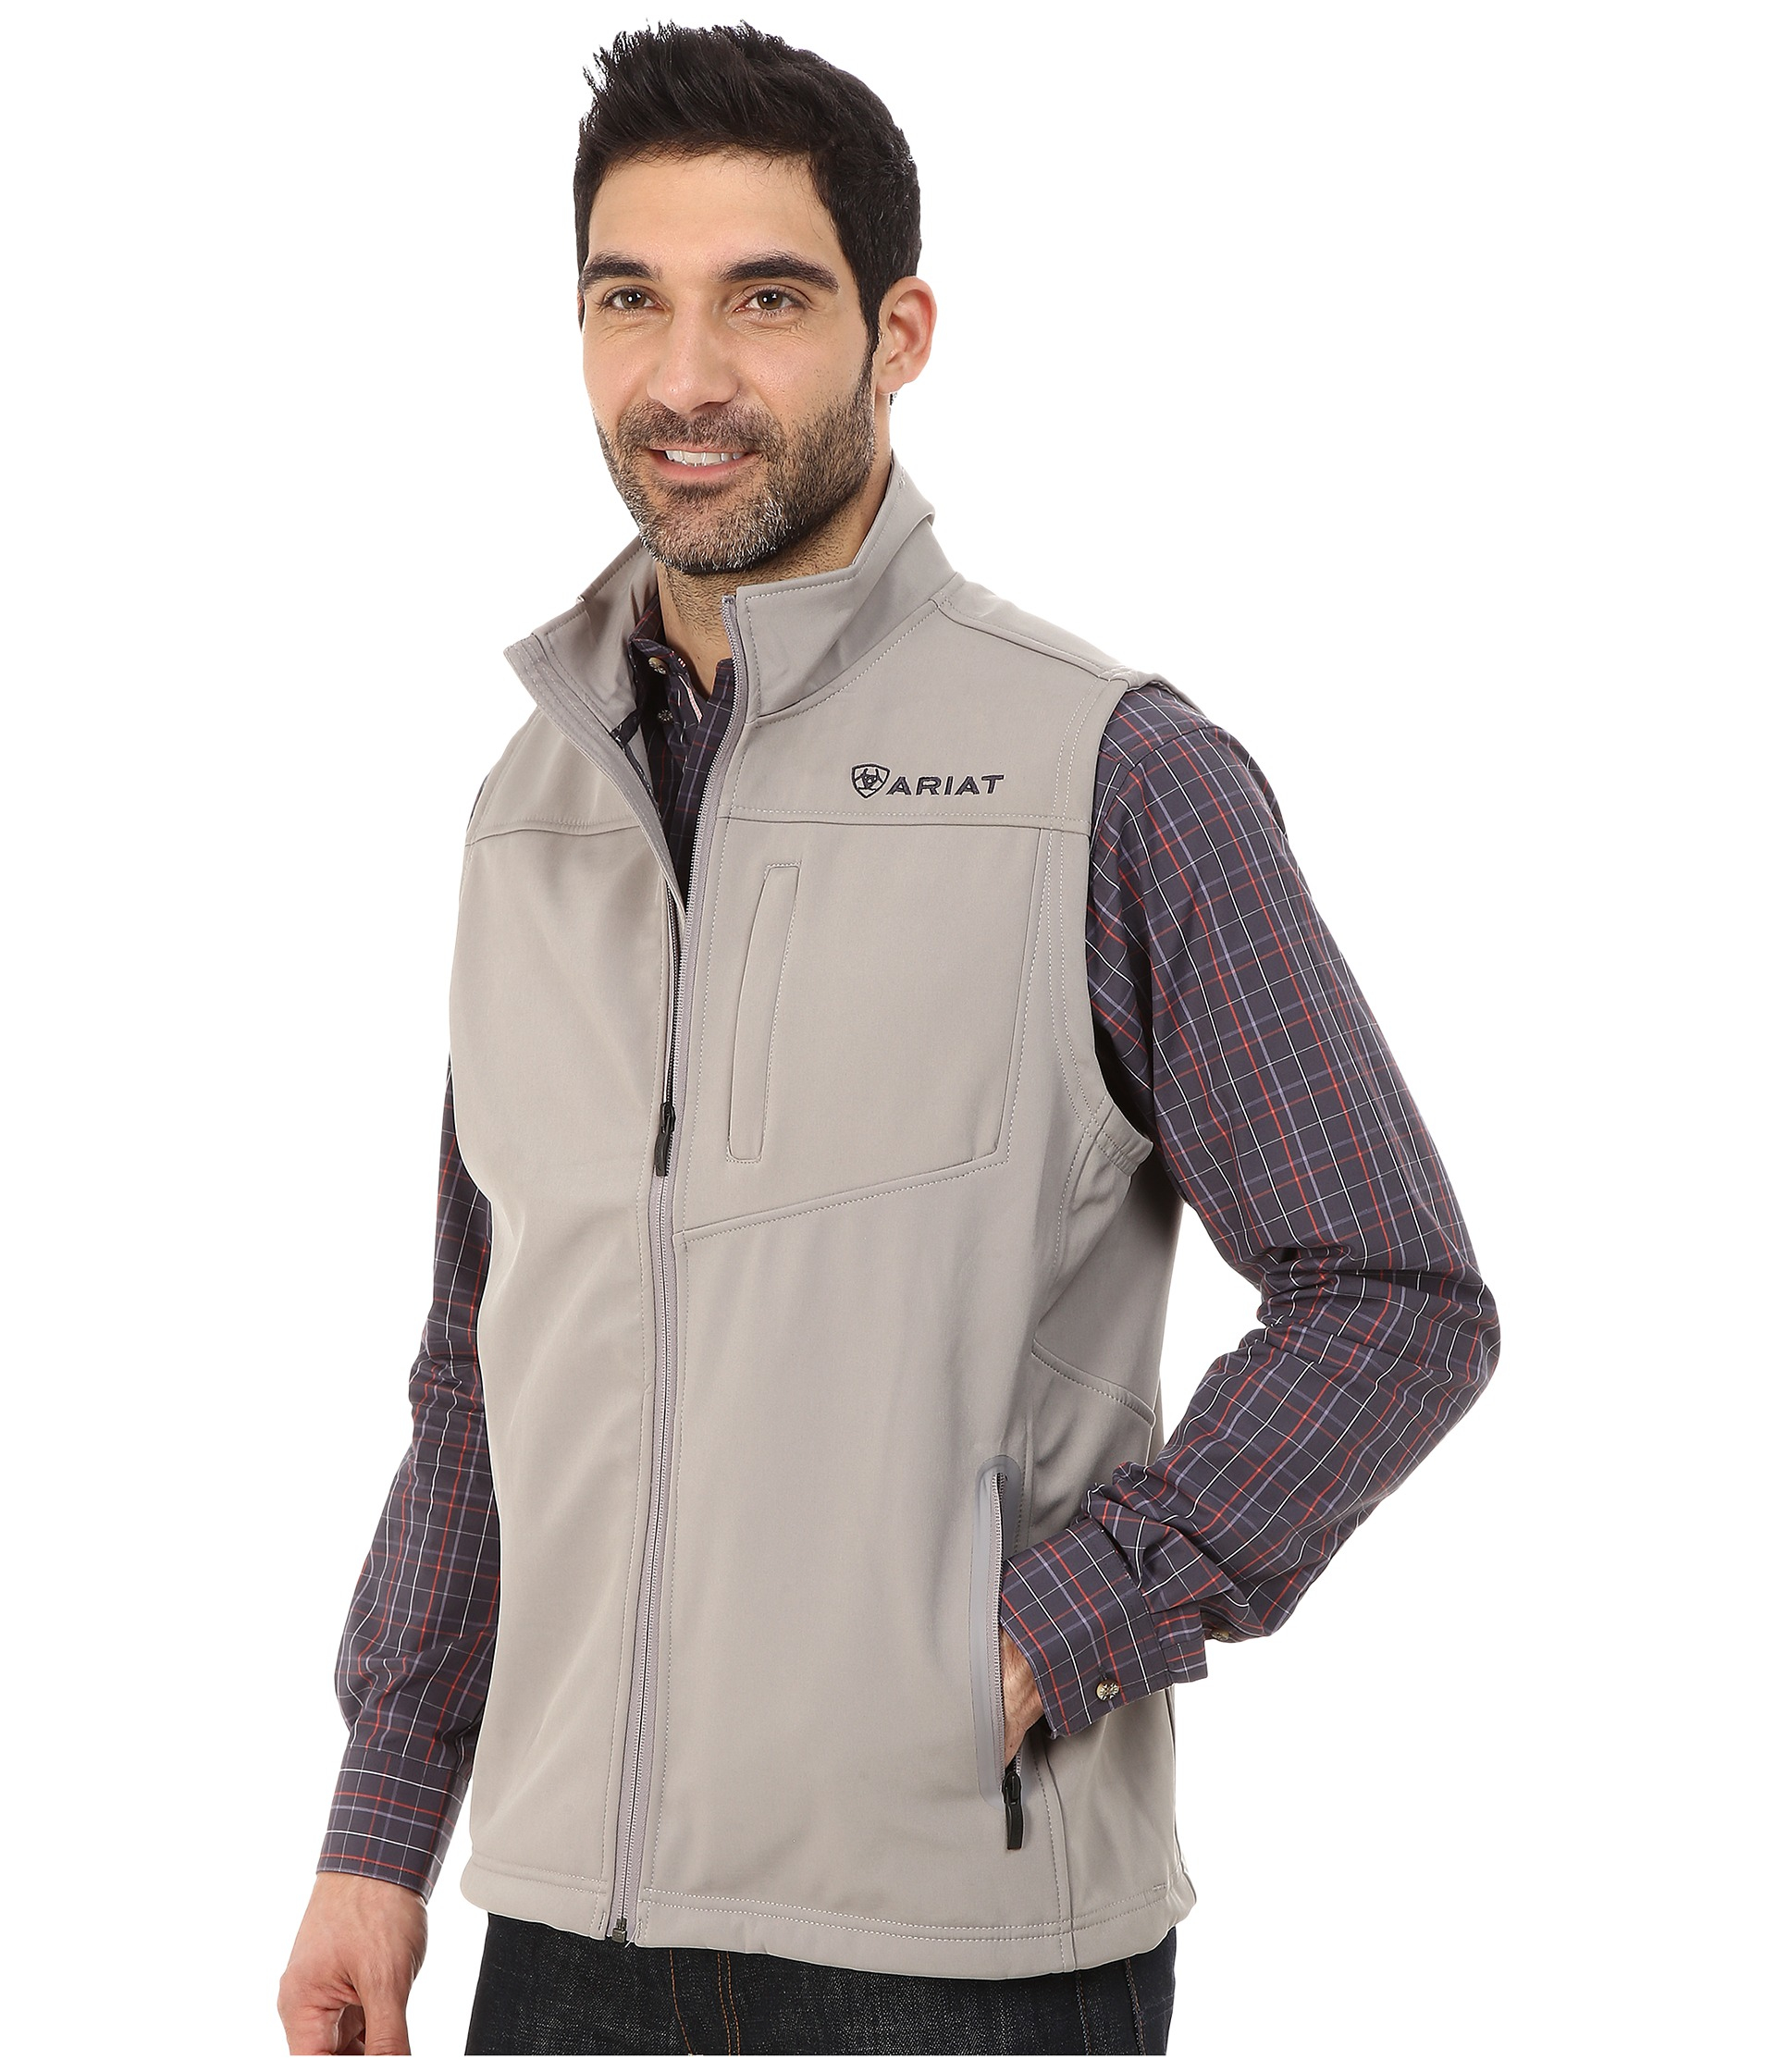 Lyst - Ariat Vernon Softshell Vest in Gray for Men